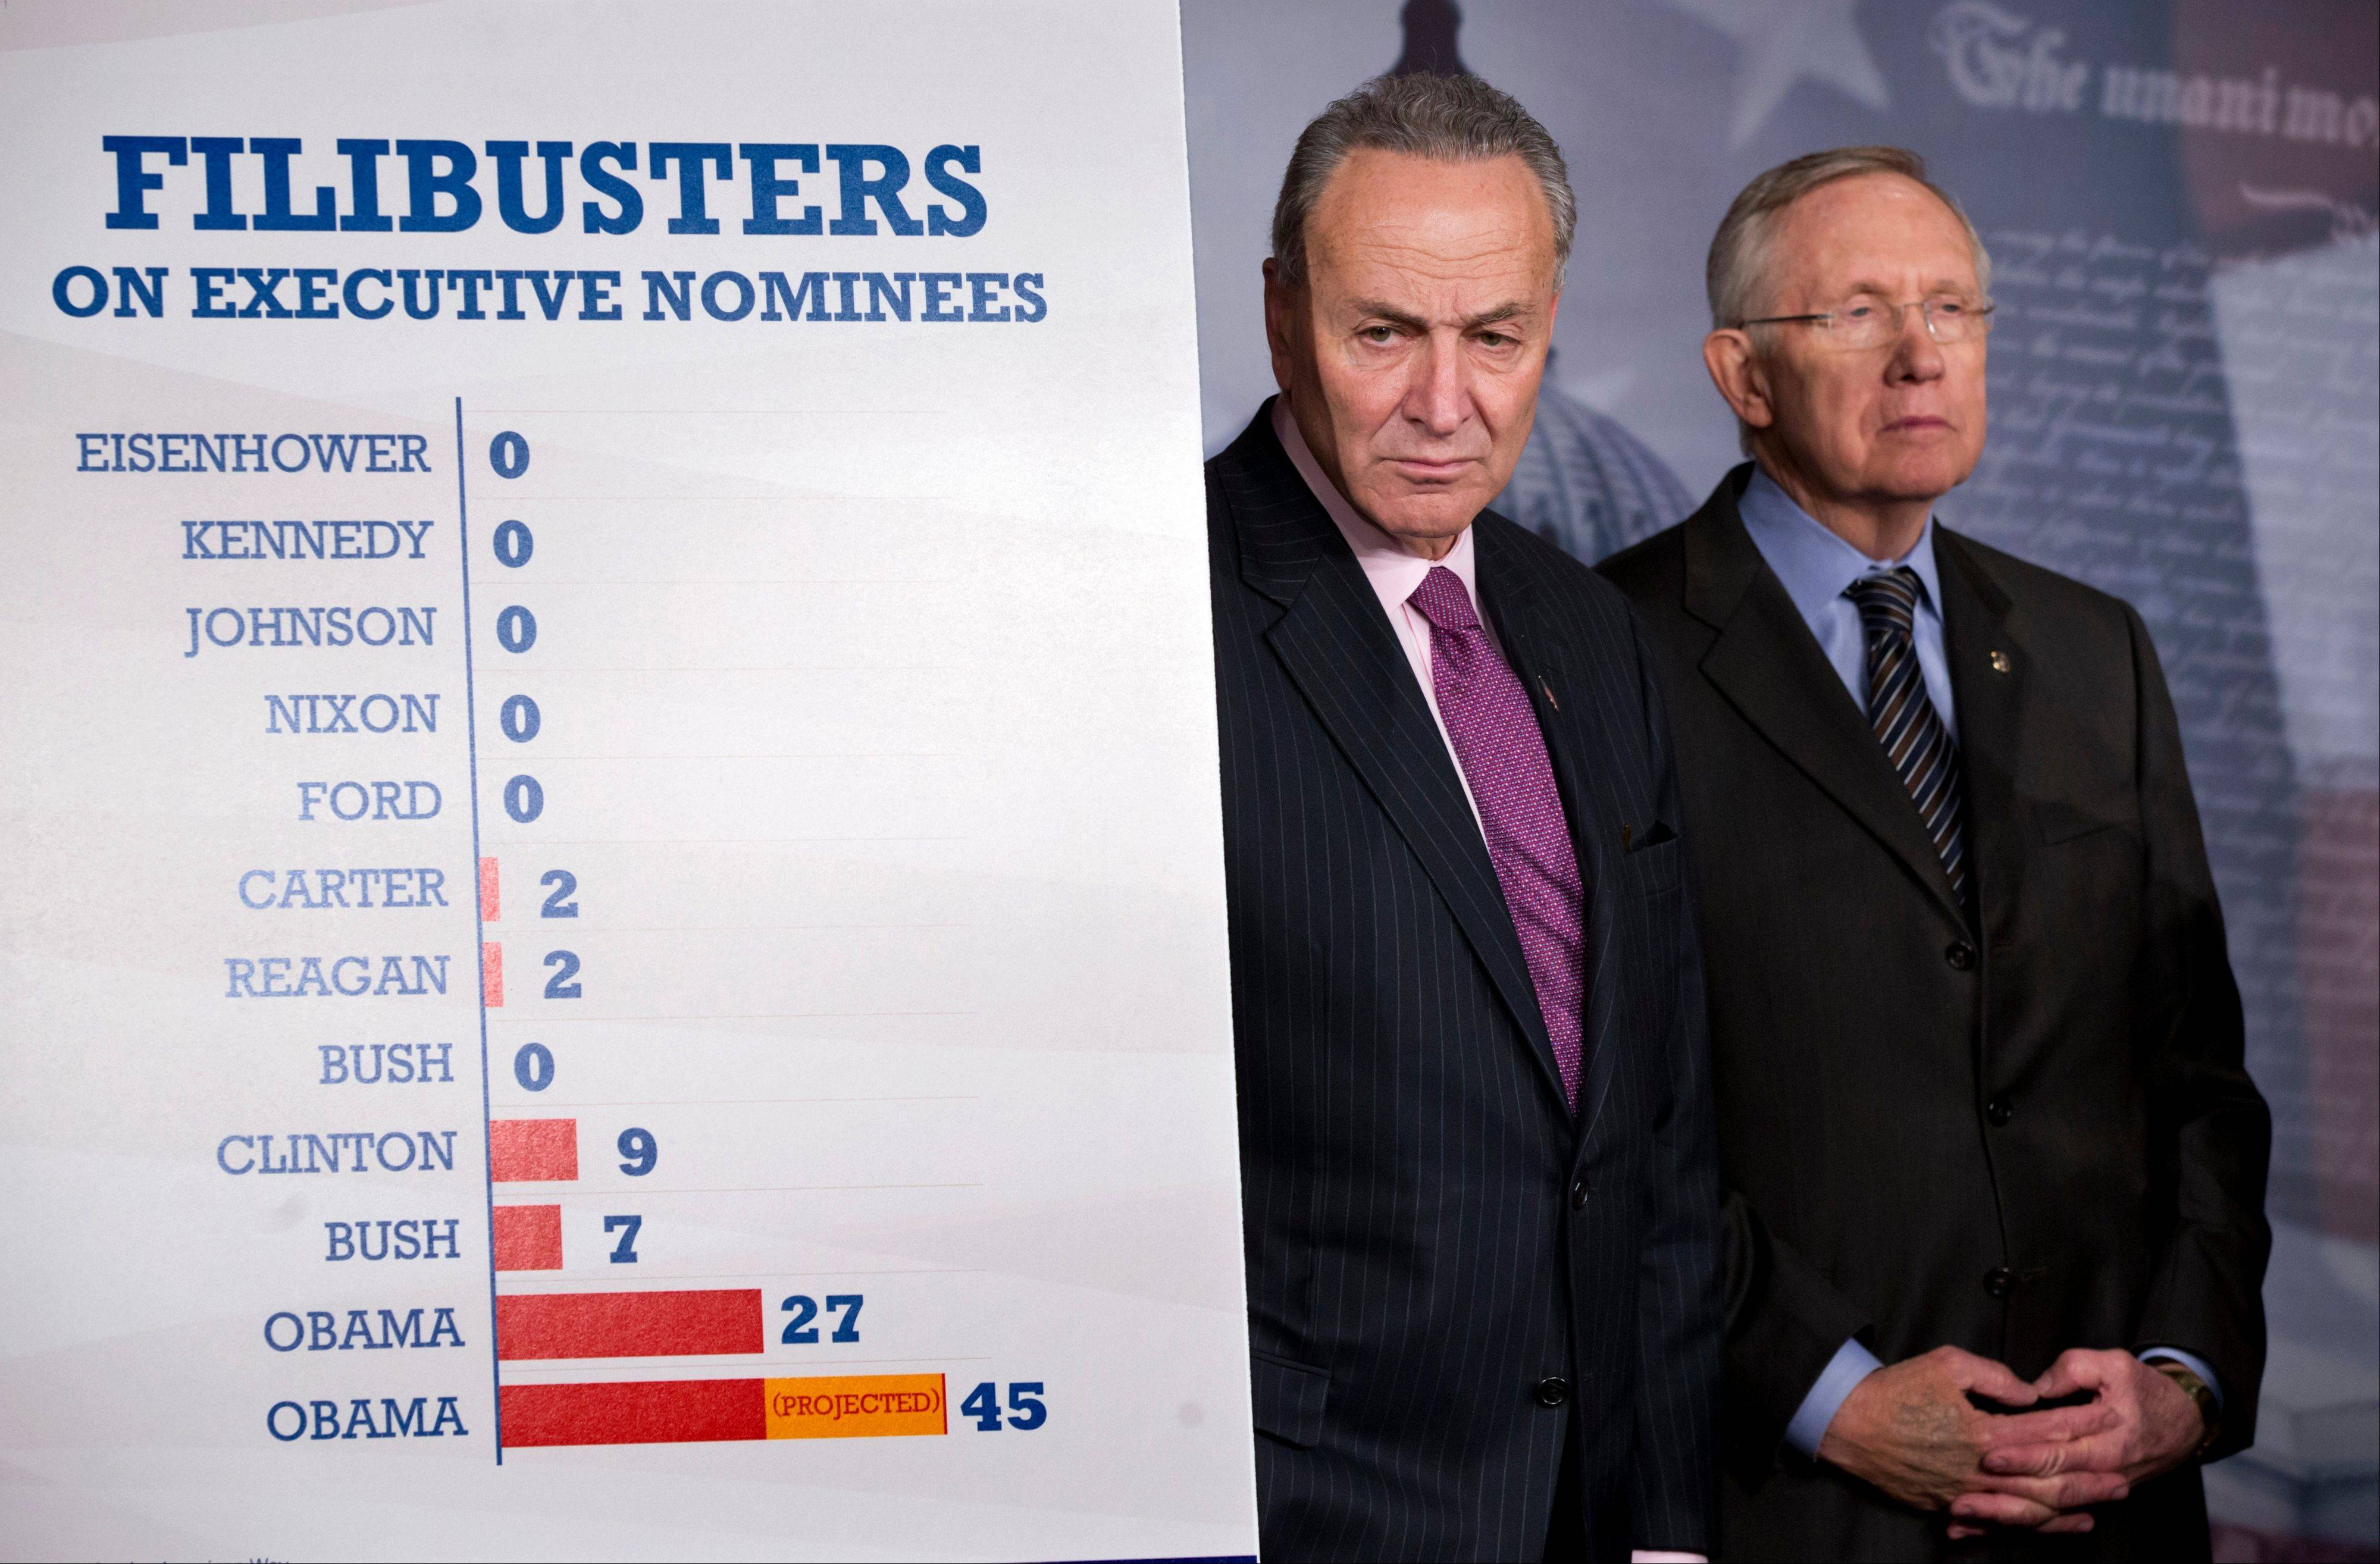 Sen. Charles Schumer, D-N.Y., left, joins Senate Majority Leader Harry Reid of Nev. in defending the Senate Democrats' vote to weaken filibusters and make it harder for Republicans to block confirmation of the president's nominees for judges and other top posts, Thursday, Nov. 21, 2013, during a news conference on Capitol Hill in Washington.